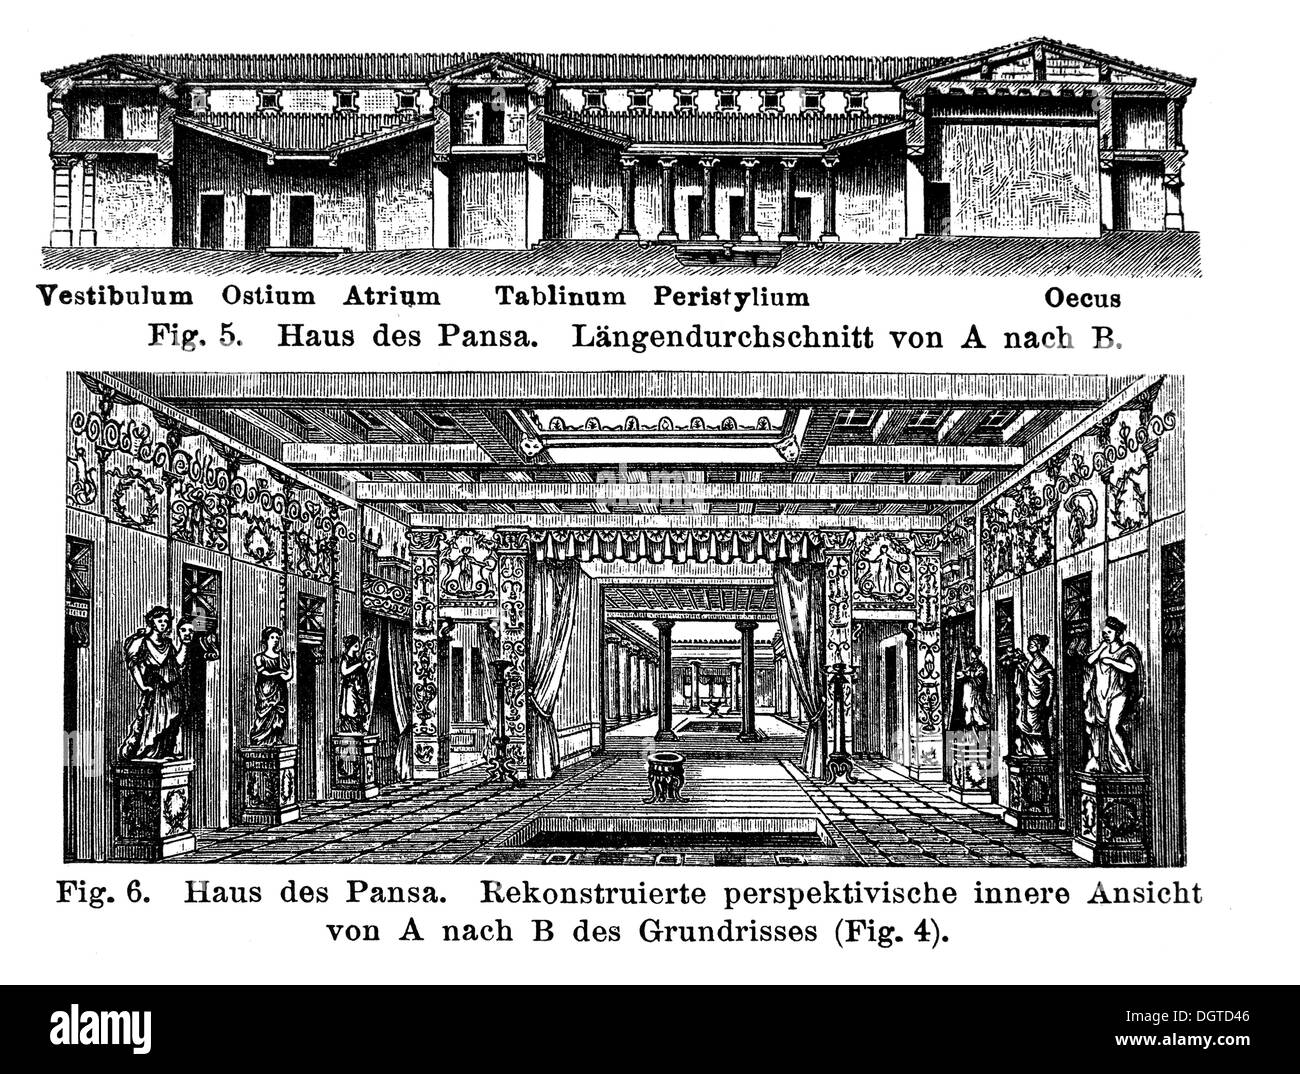 House of Pansa, illustration, Meyers Konversations-Lexikon encyclopedia, 1897 - Stock Image